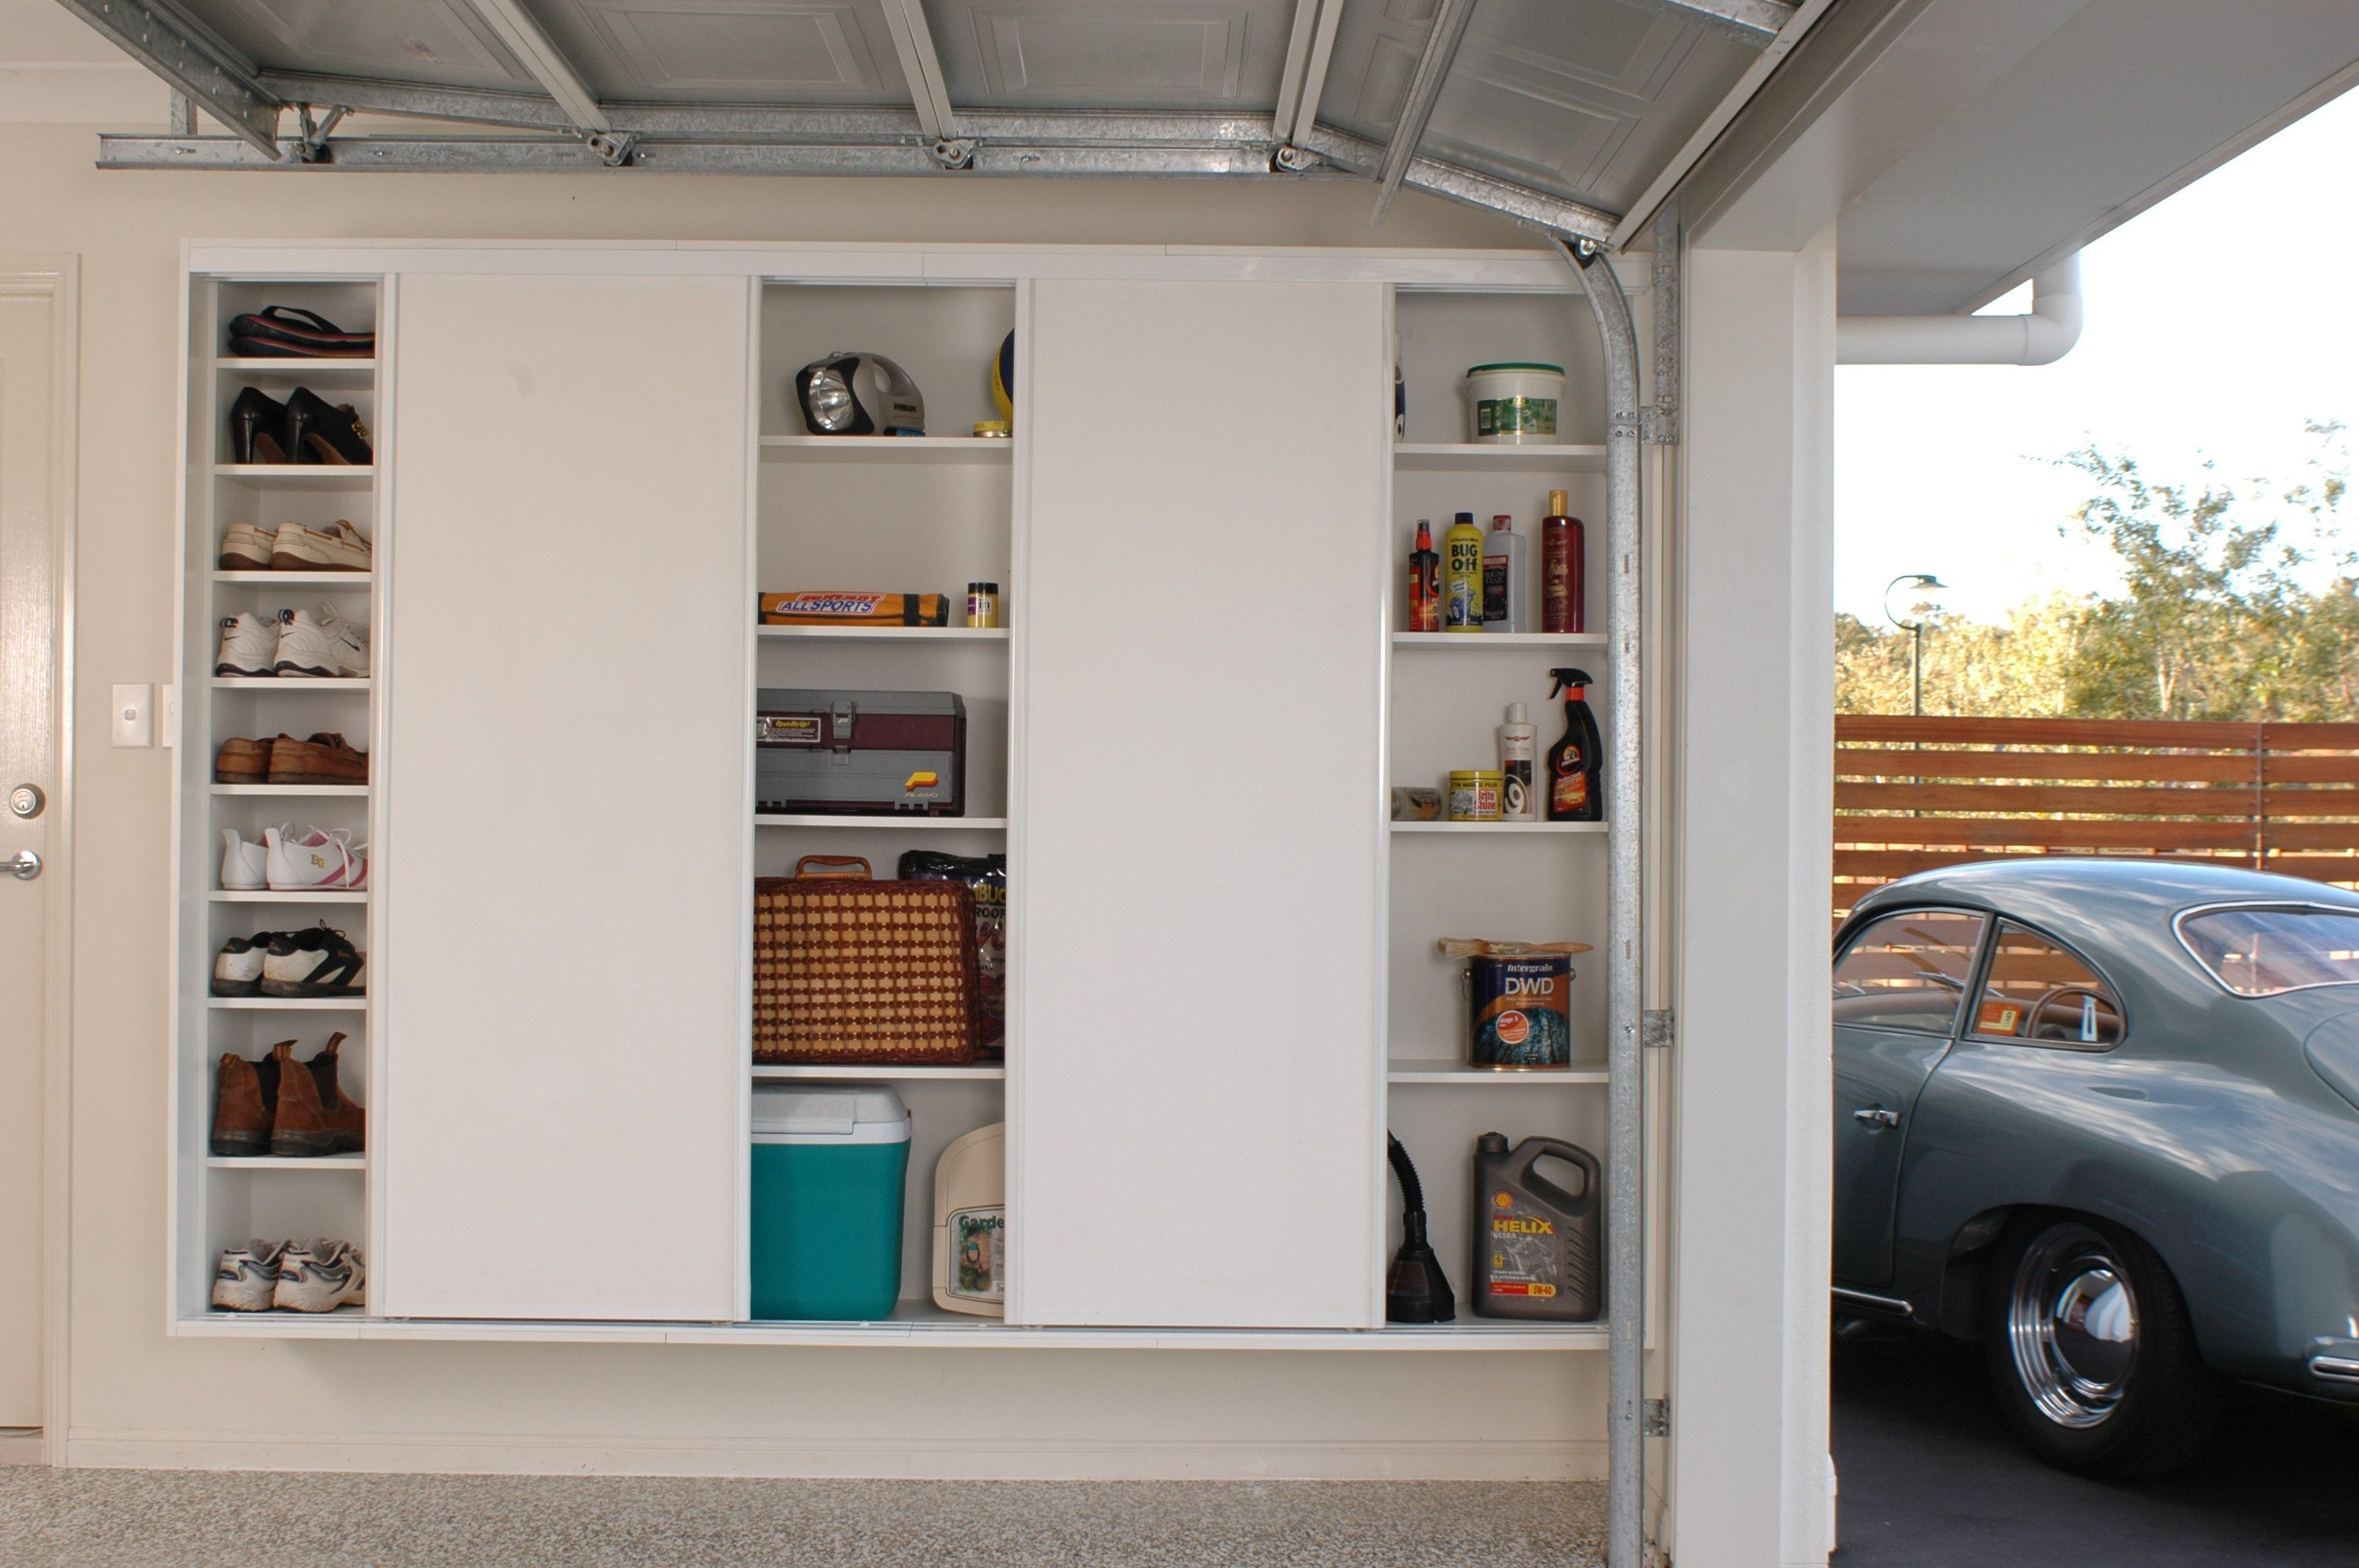 Slimline Built In Cupboards With Sliding Doors For Ease Of Access